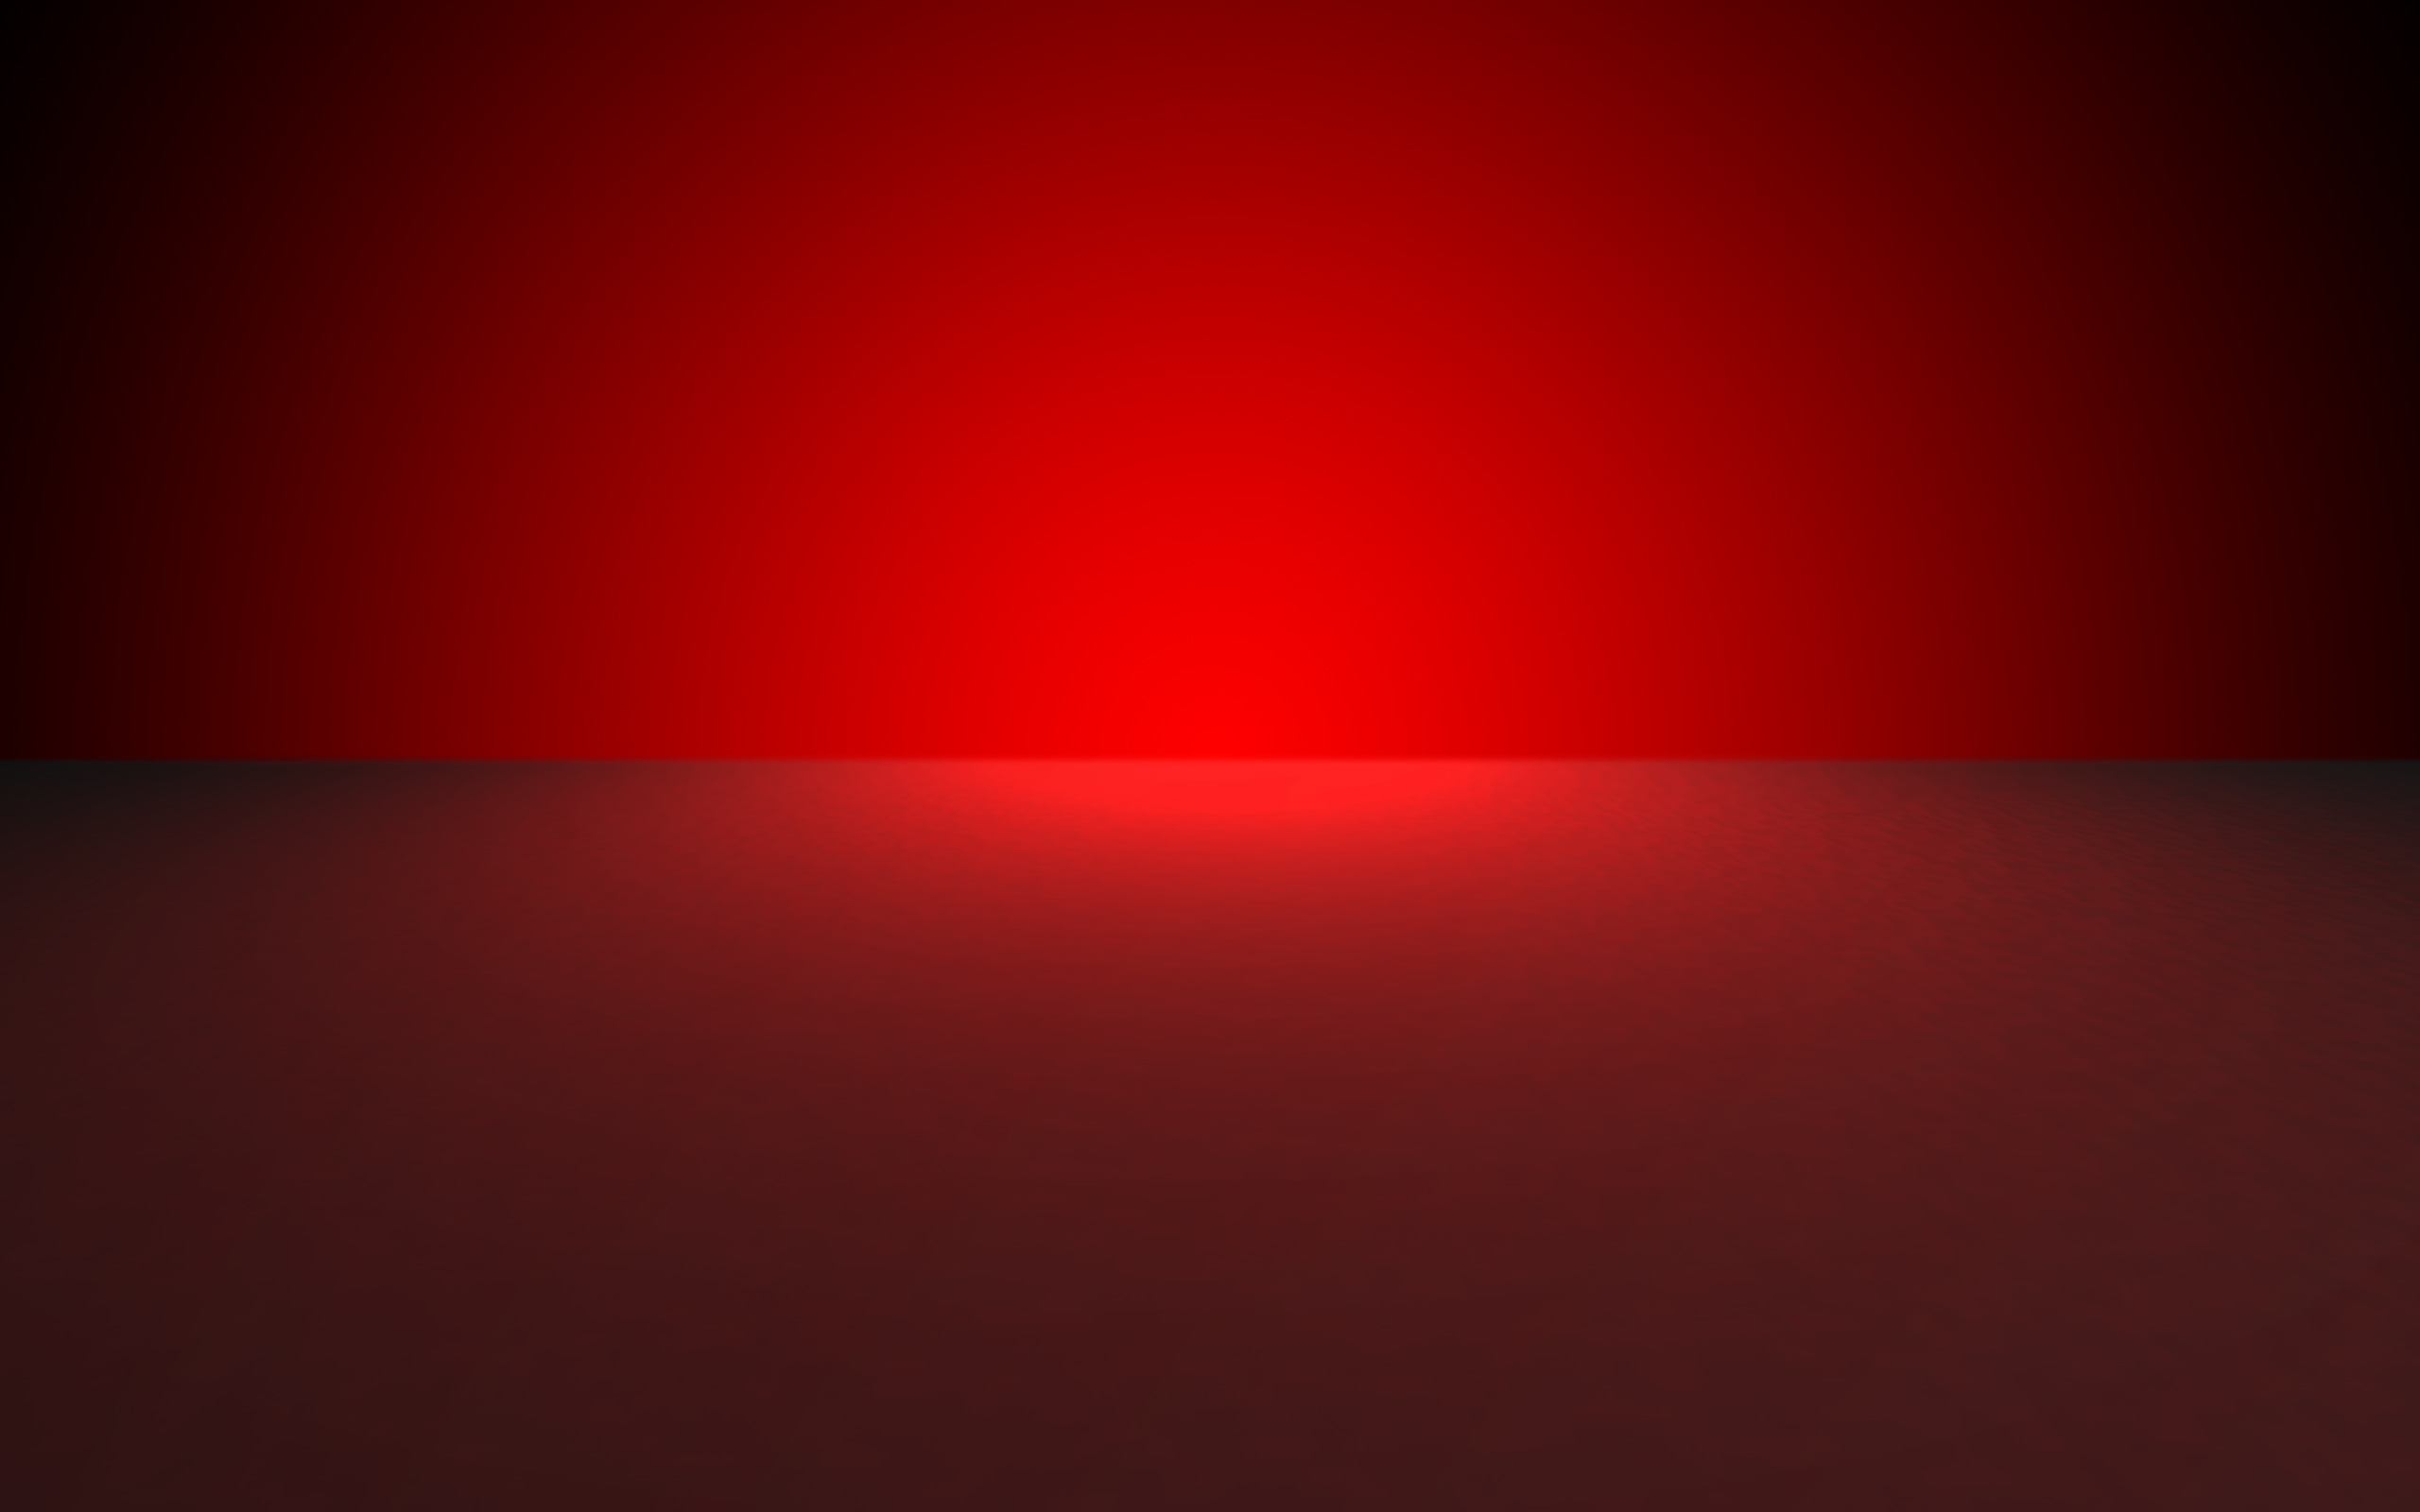 red and black background 25 cool wallpaper